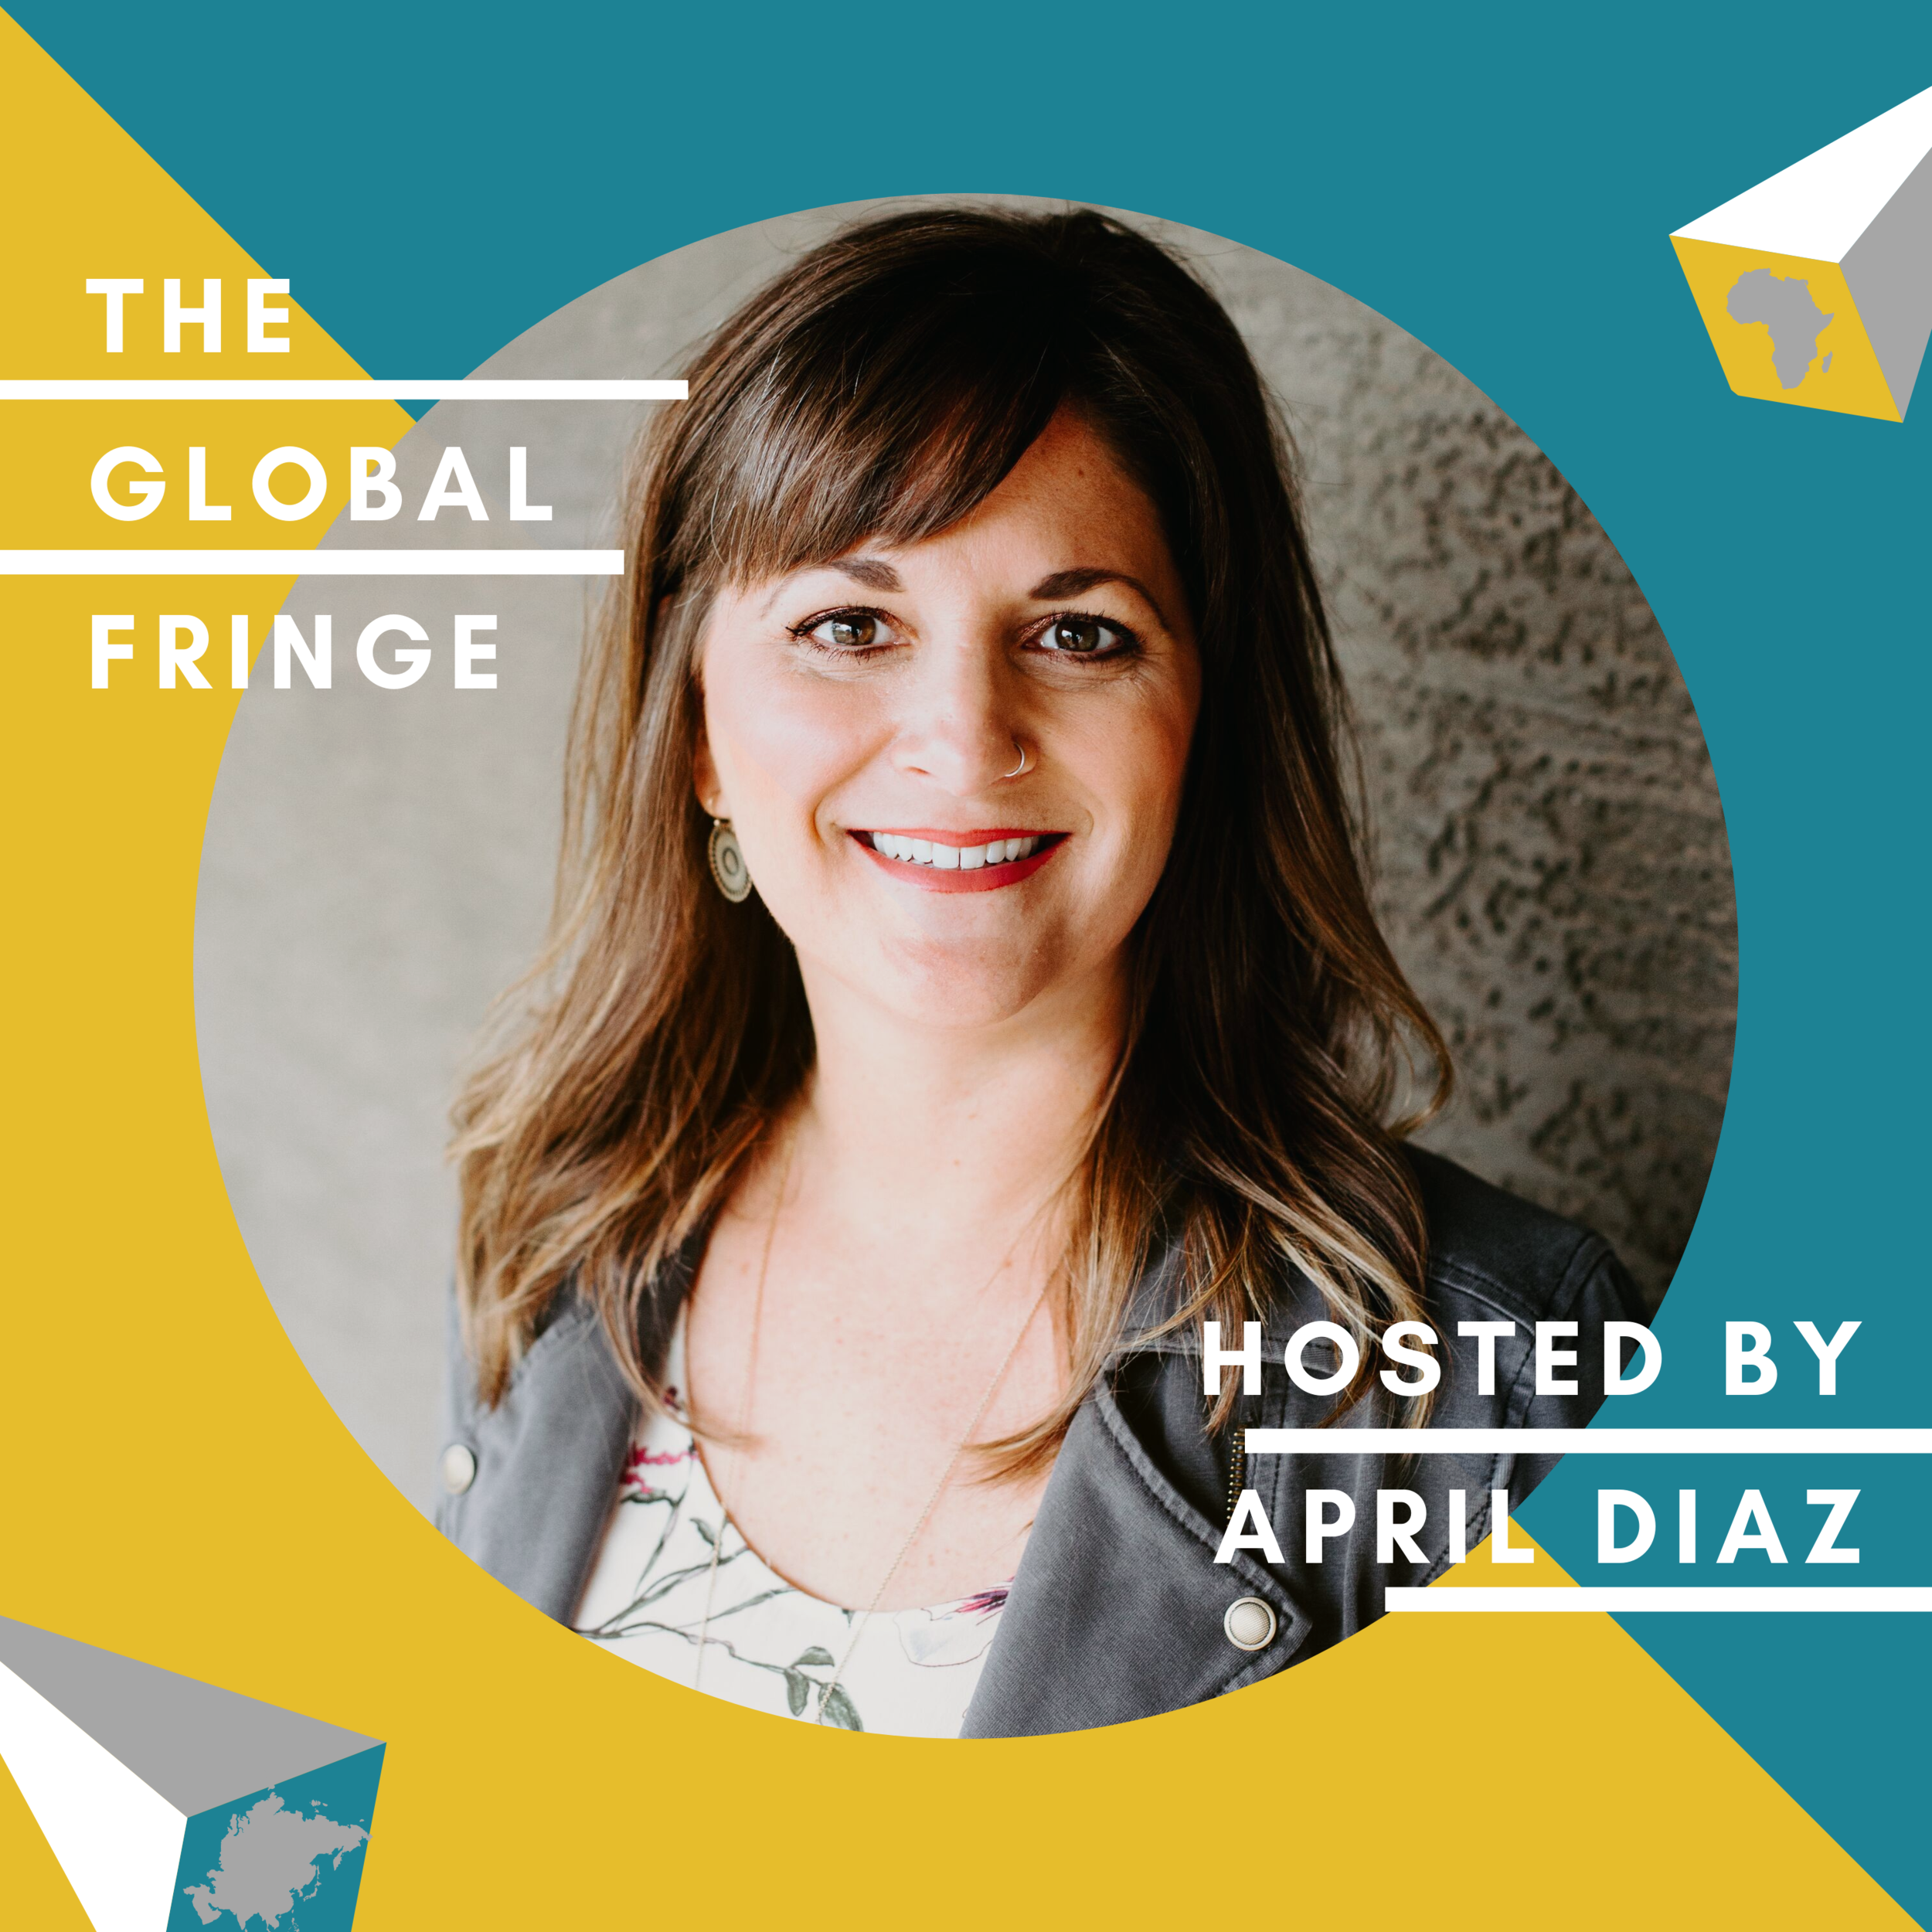 The Global Fringe